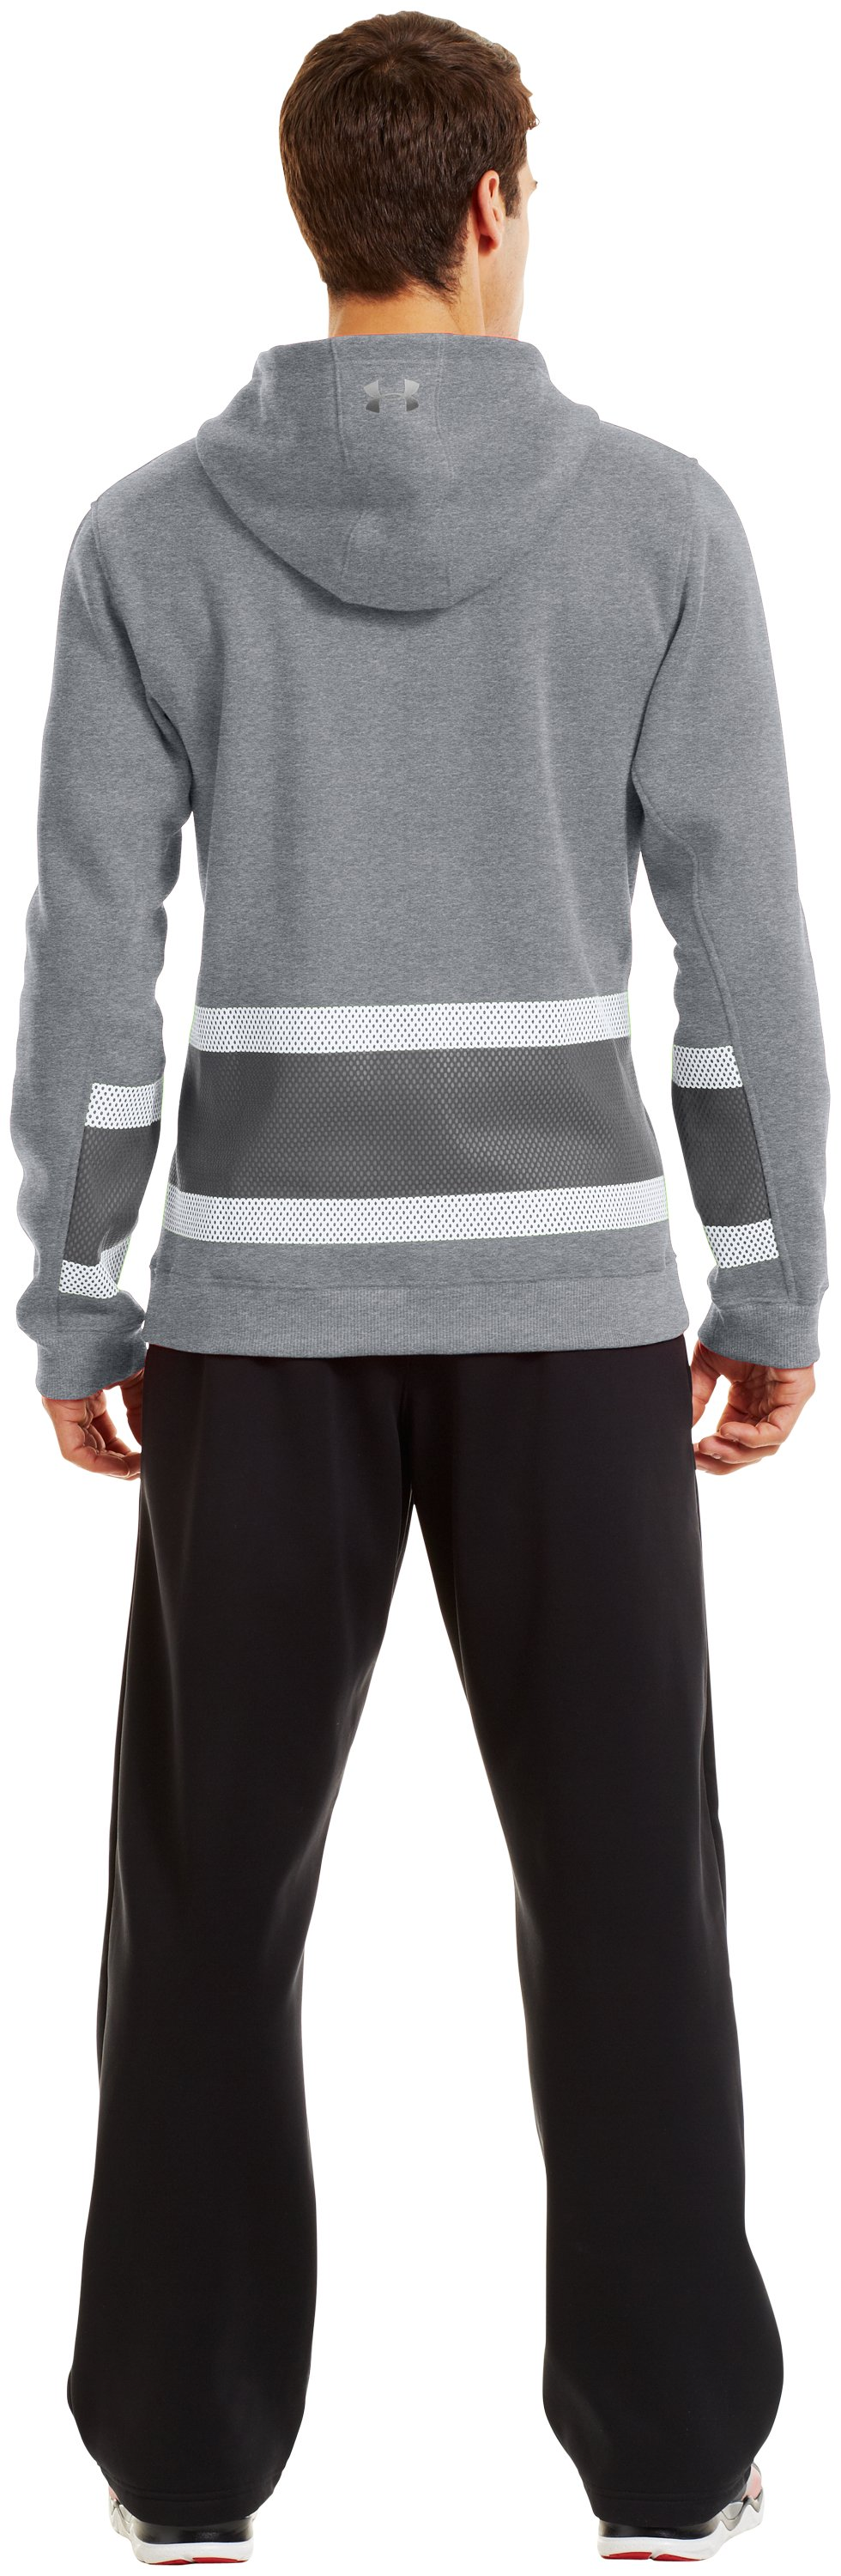 Men's Charged Cotton® Storm Chuck-A-Puck Hoodie, True Gray Heather, Back